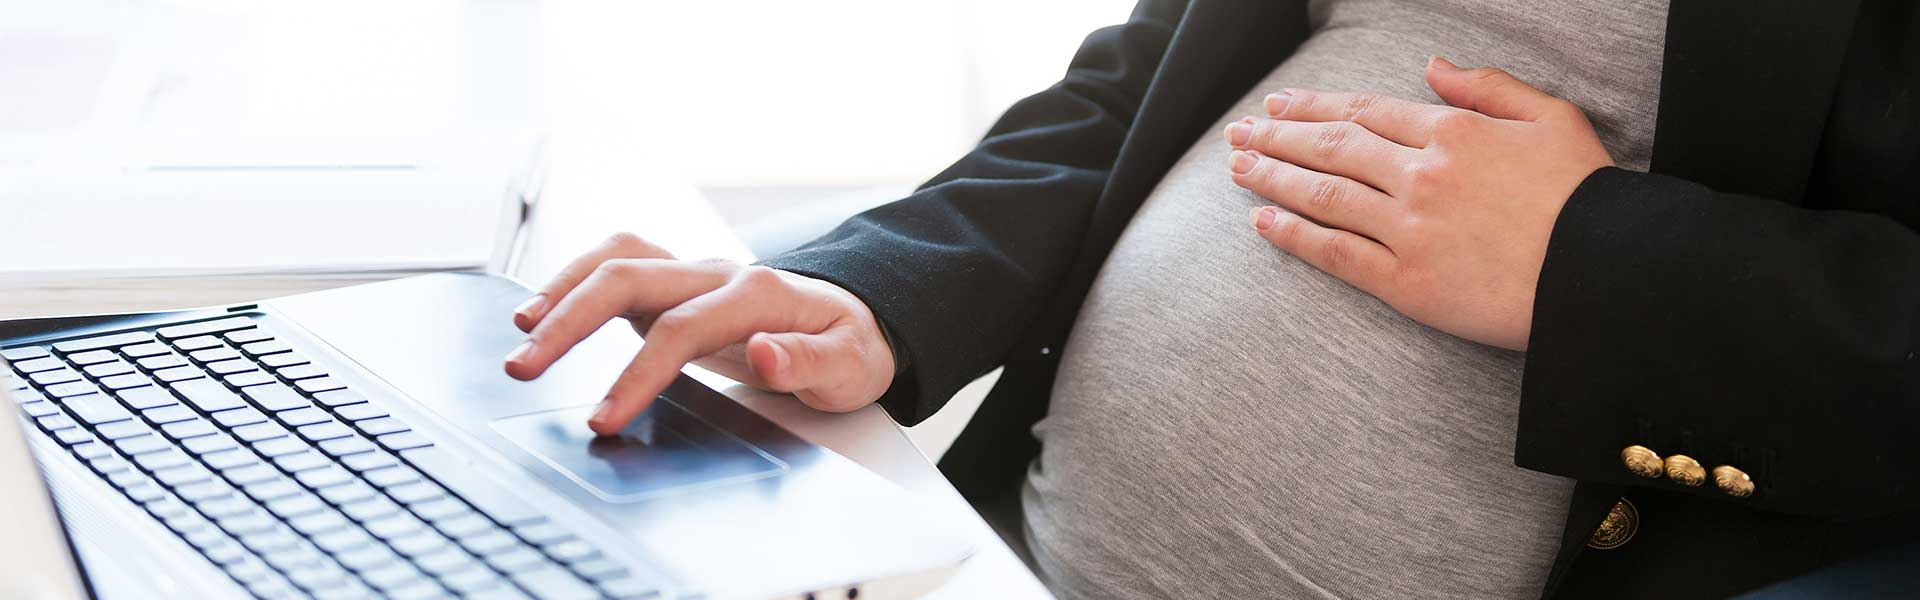 Risk Assessment for New and Expectant Mothers